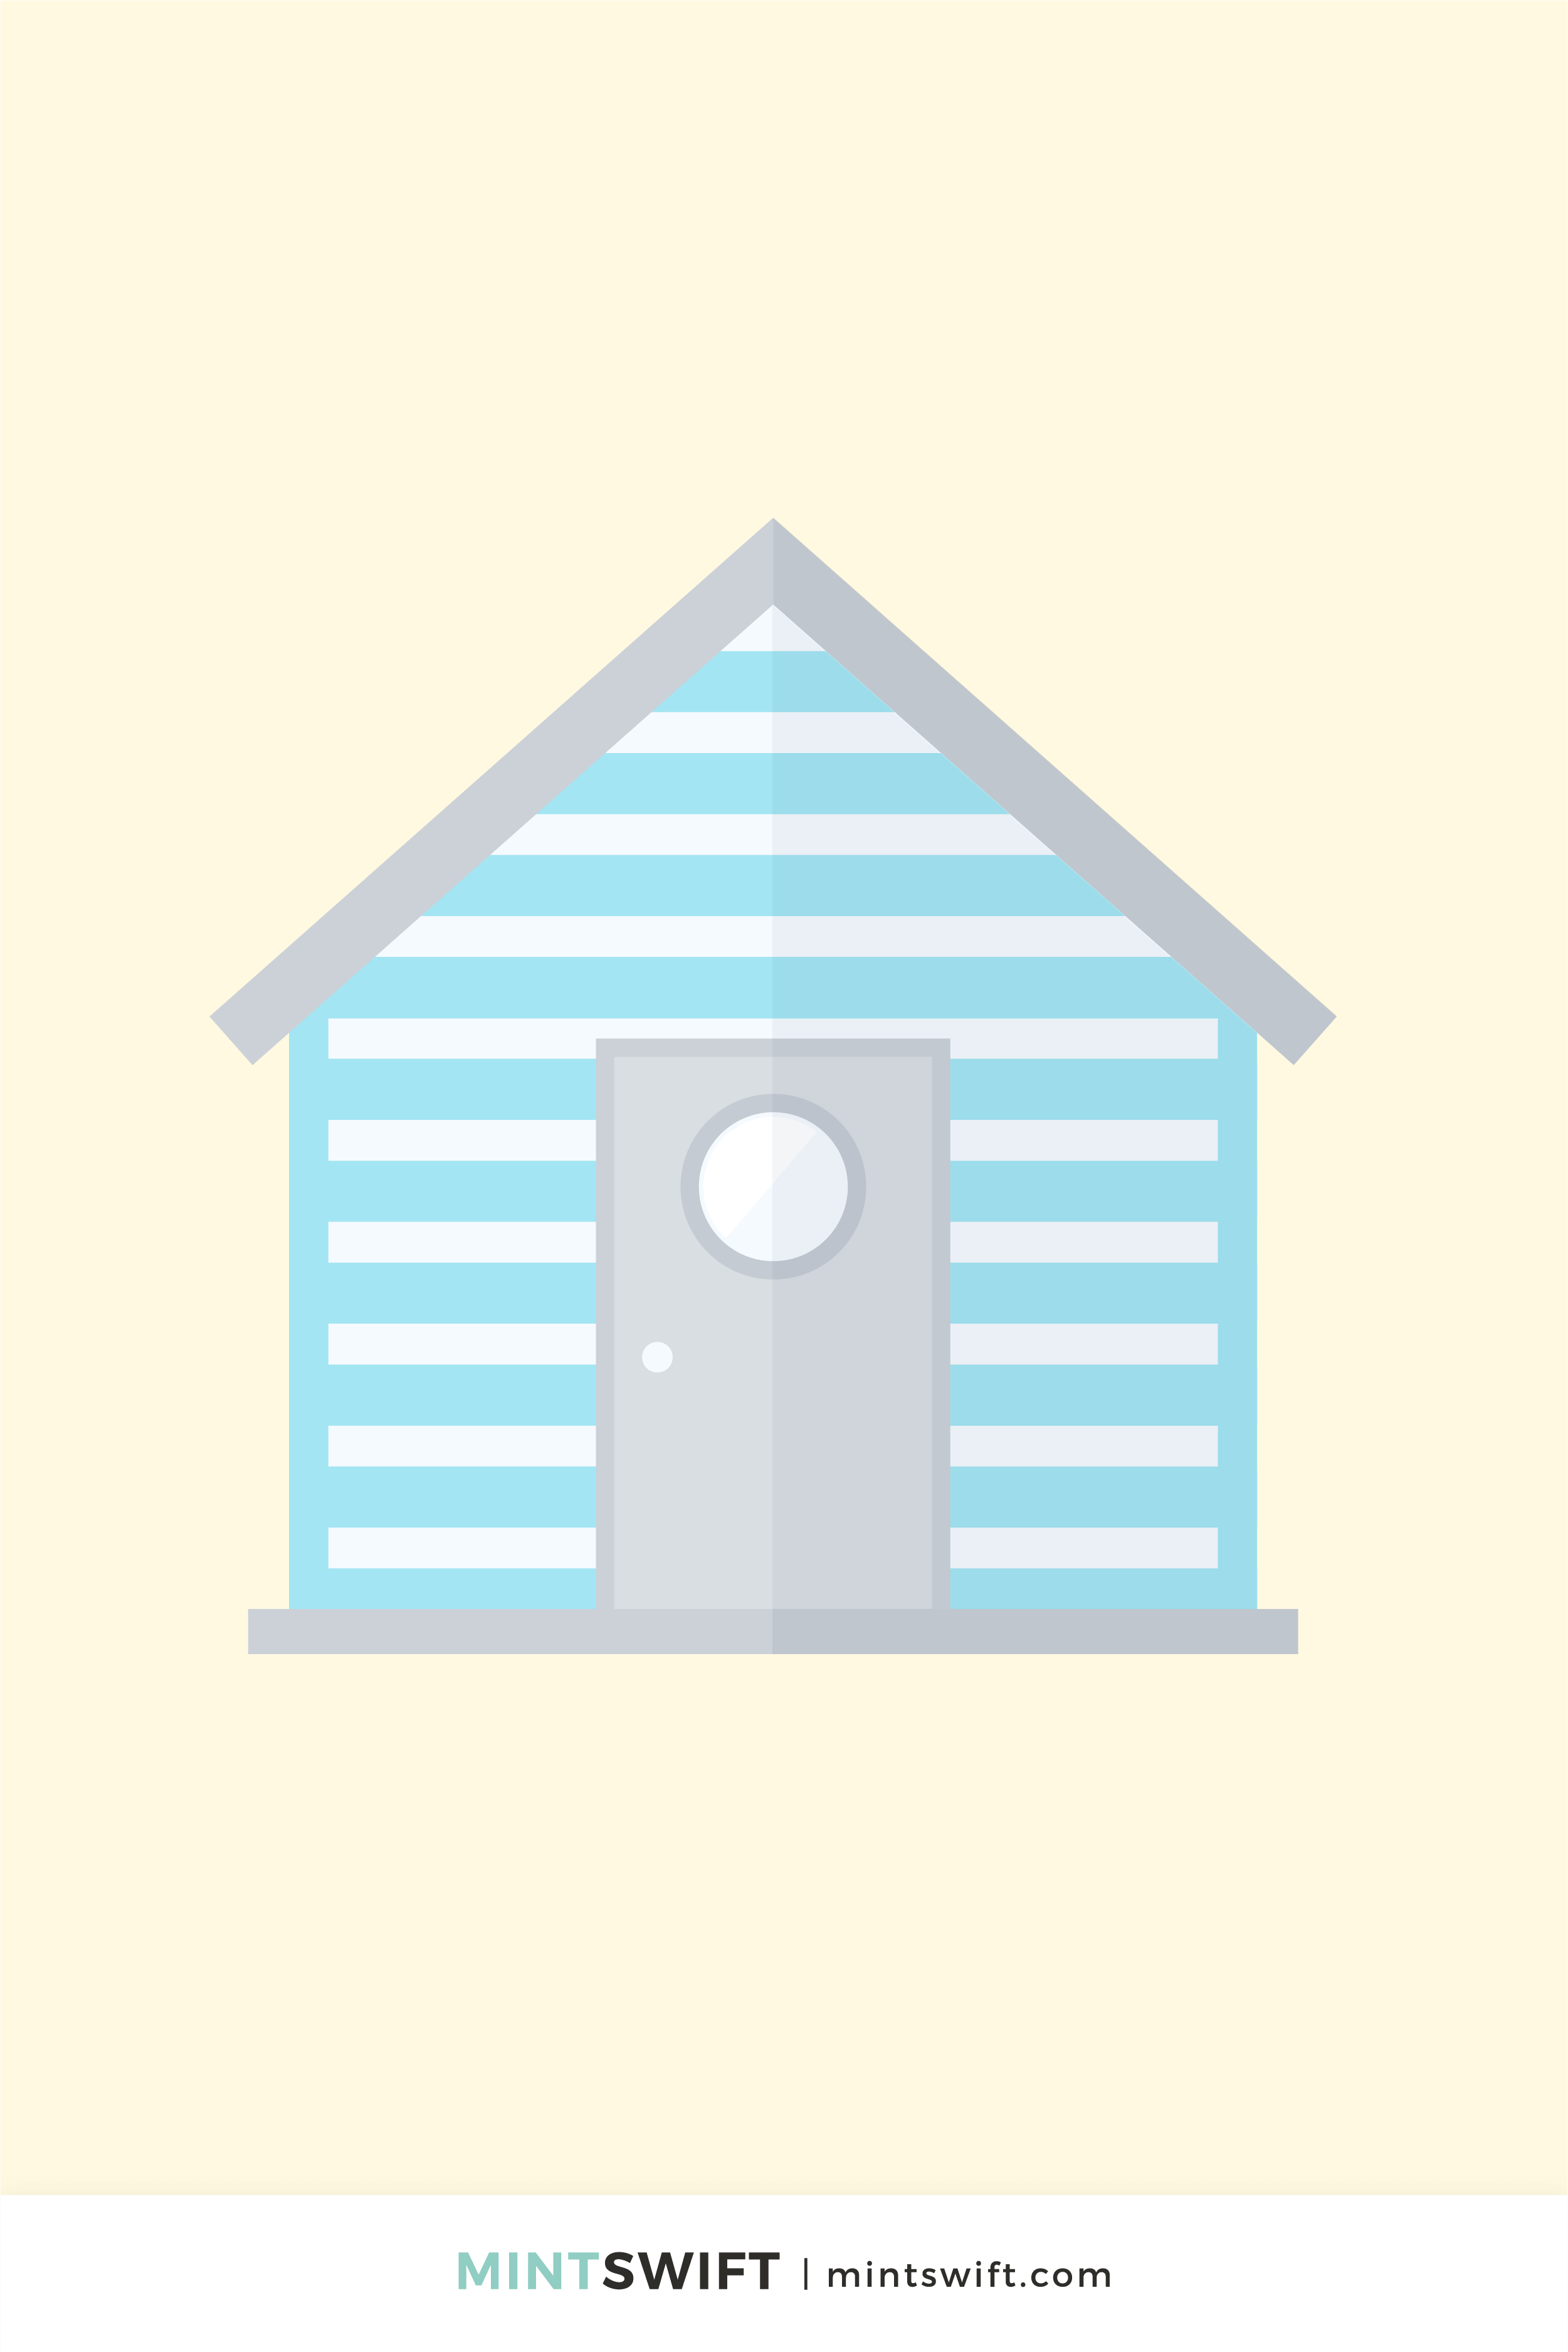 Vector illustration of a grey and light blue British beach hut in flat design style on a light yellow background